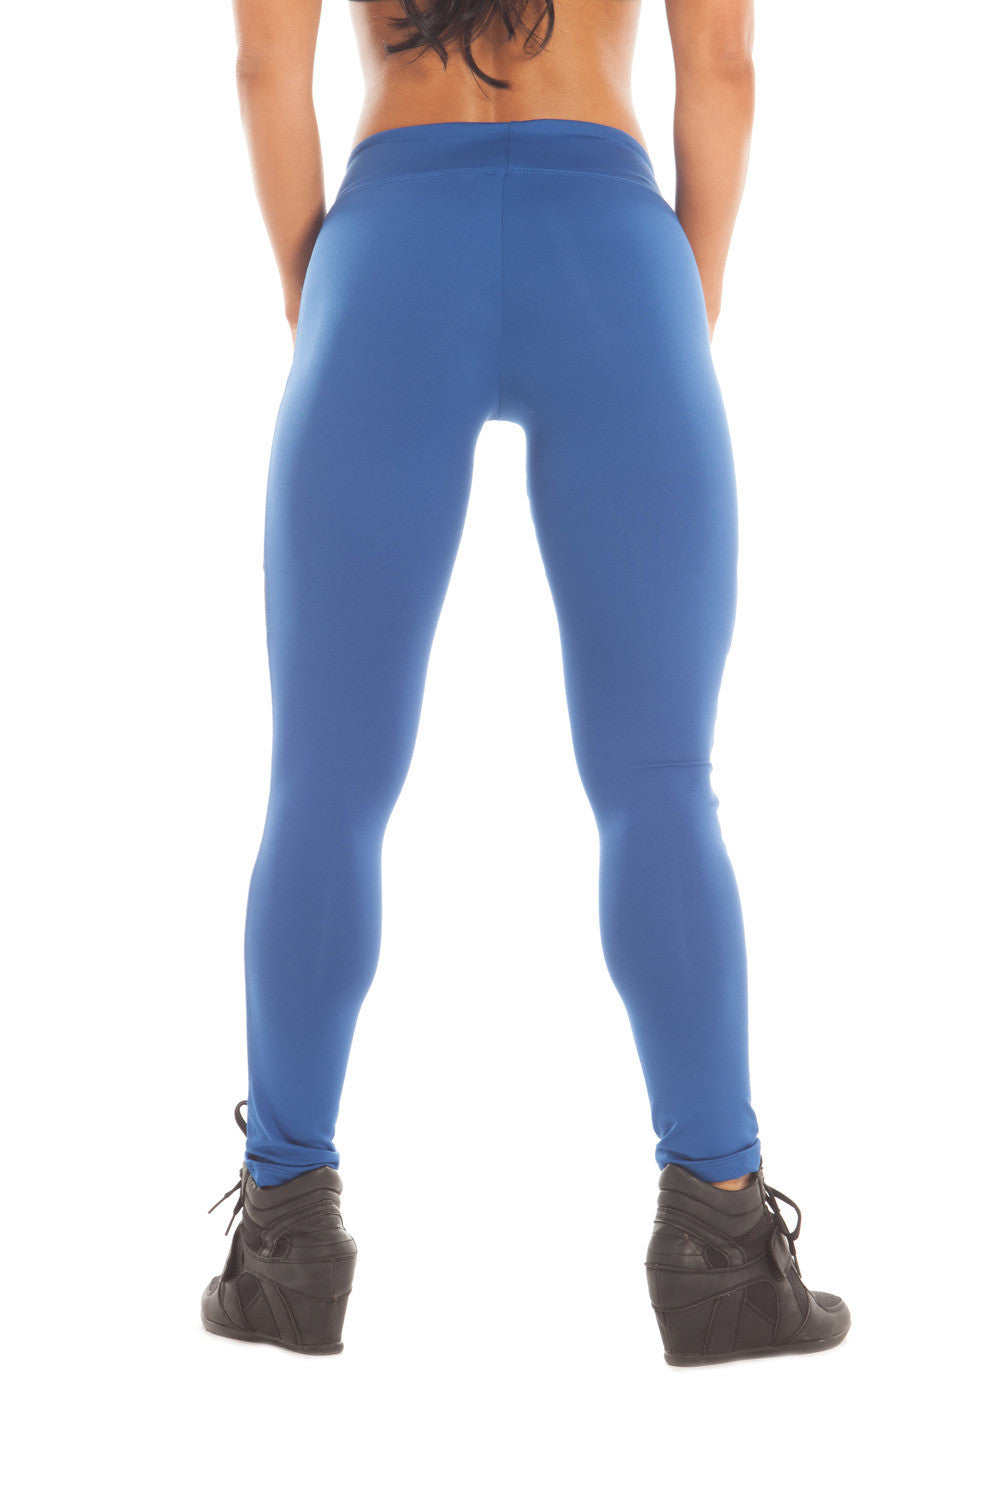 HEATHER ROYAL LEGGINGS